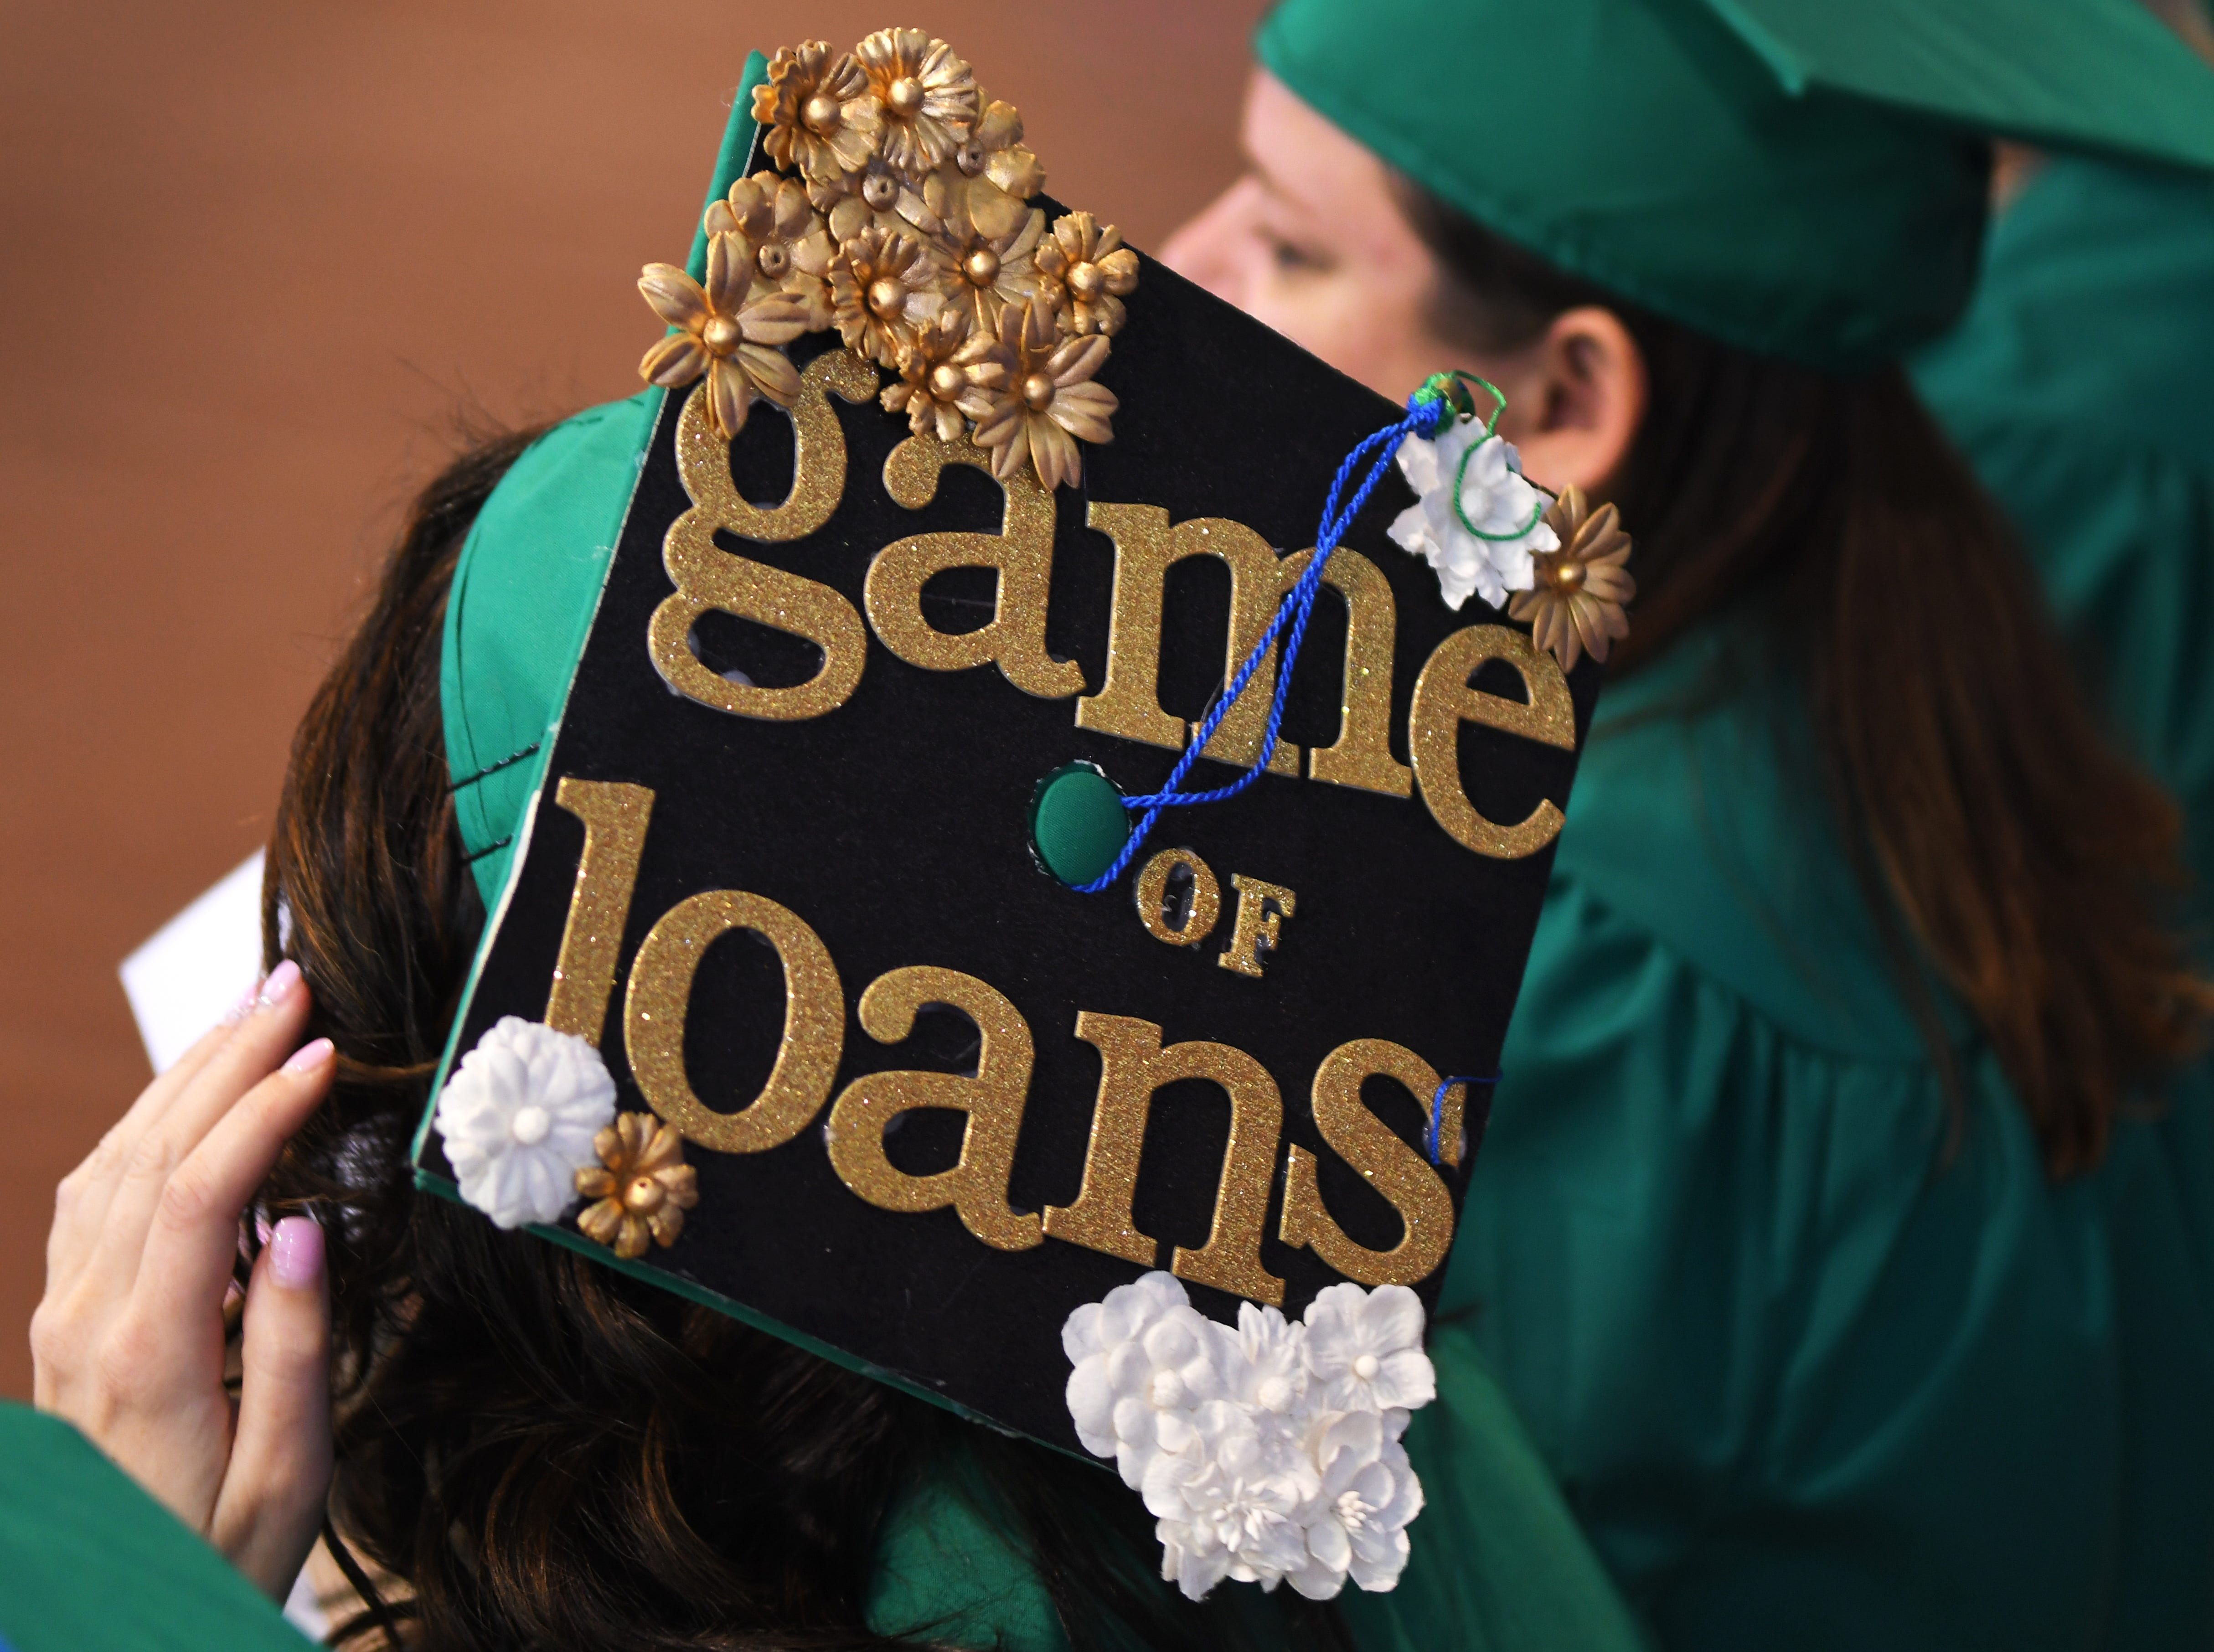 Graduates at the noon Eastern Florida State College 2019 Spring Commencement at the Melbourne campus. An additional commencement was held at 3:00 p.m.